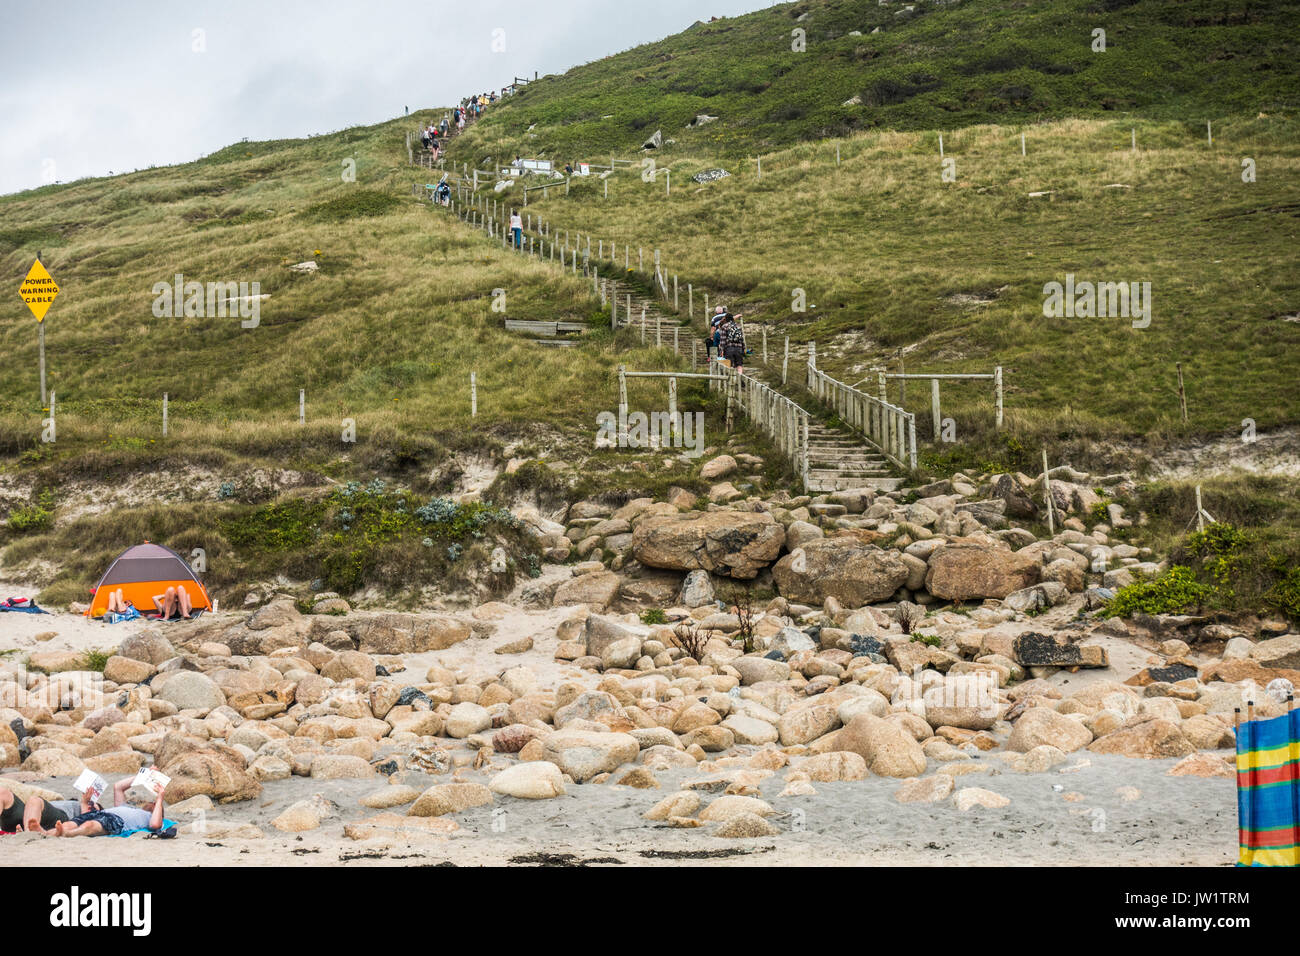 People on the steep path to Gwynver Beach, near Penzance, Cornwall, England, UK. - Stock Image